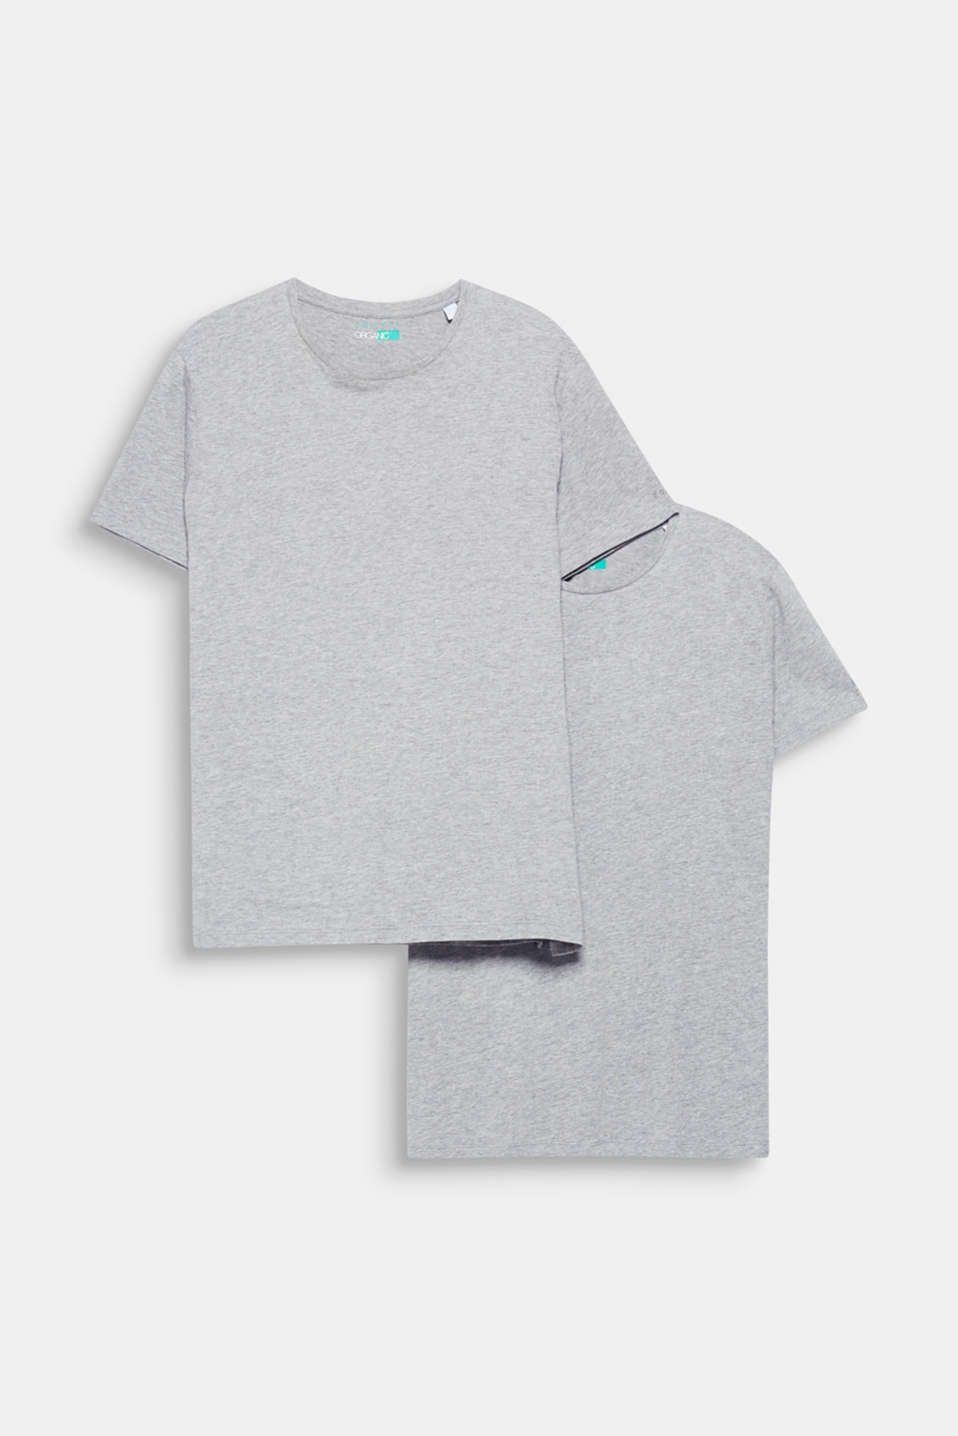 A pair of fashion basics and a must-have for every wardrobe: T-shirt with a round neckline containing environmentally-friendly, premium organic cotton.